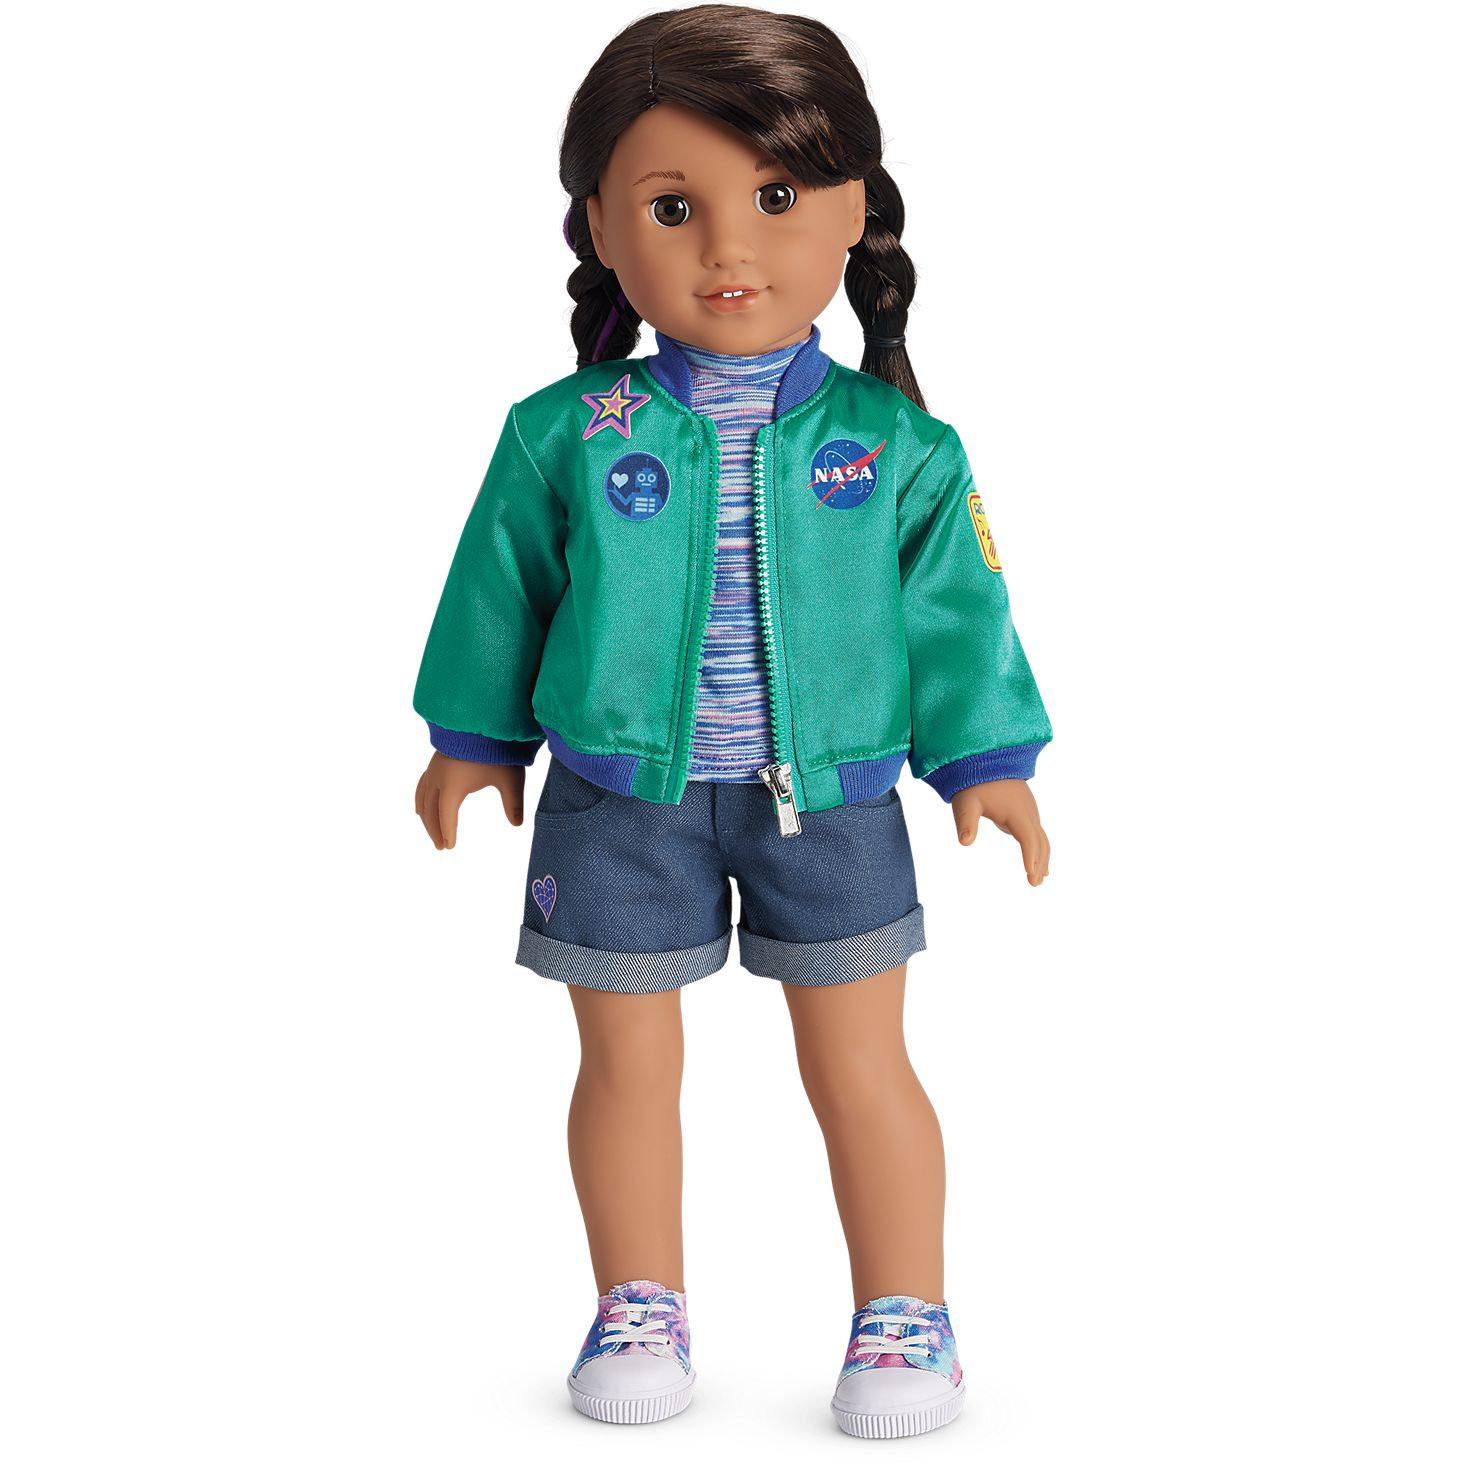 American Girl Luciana's Stellar Outfit for 18-inch Dolls